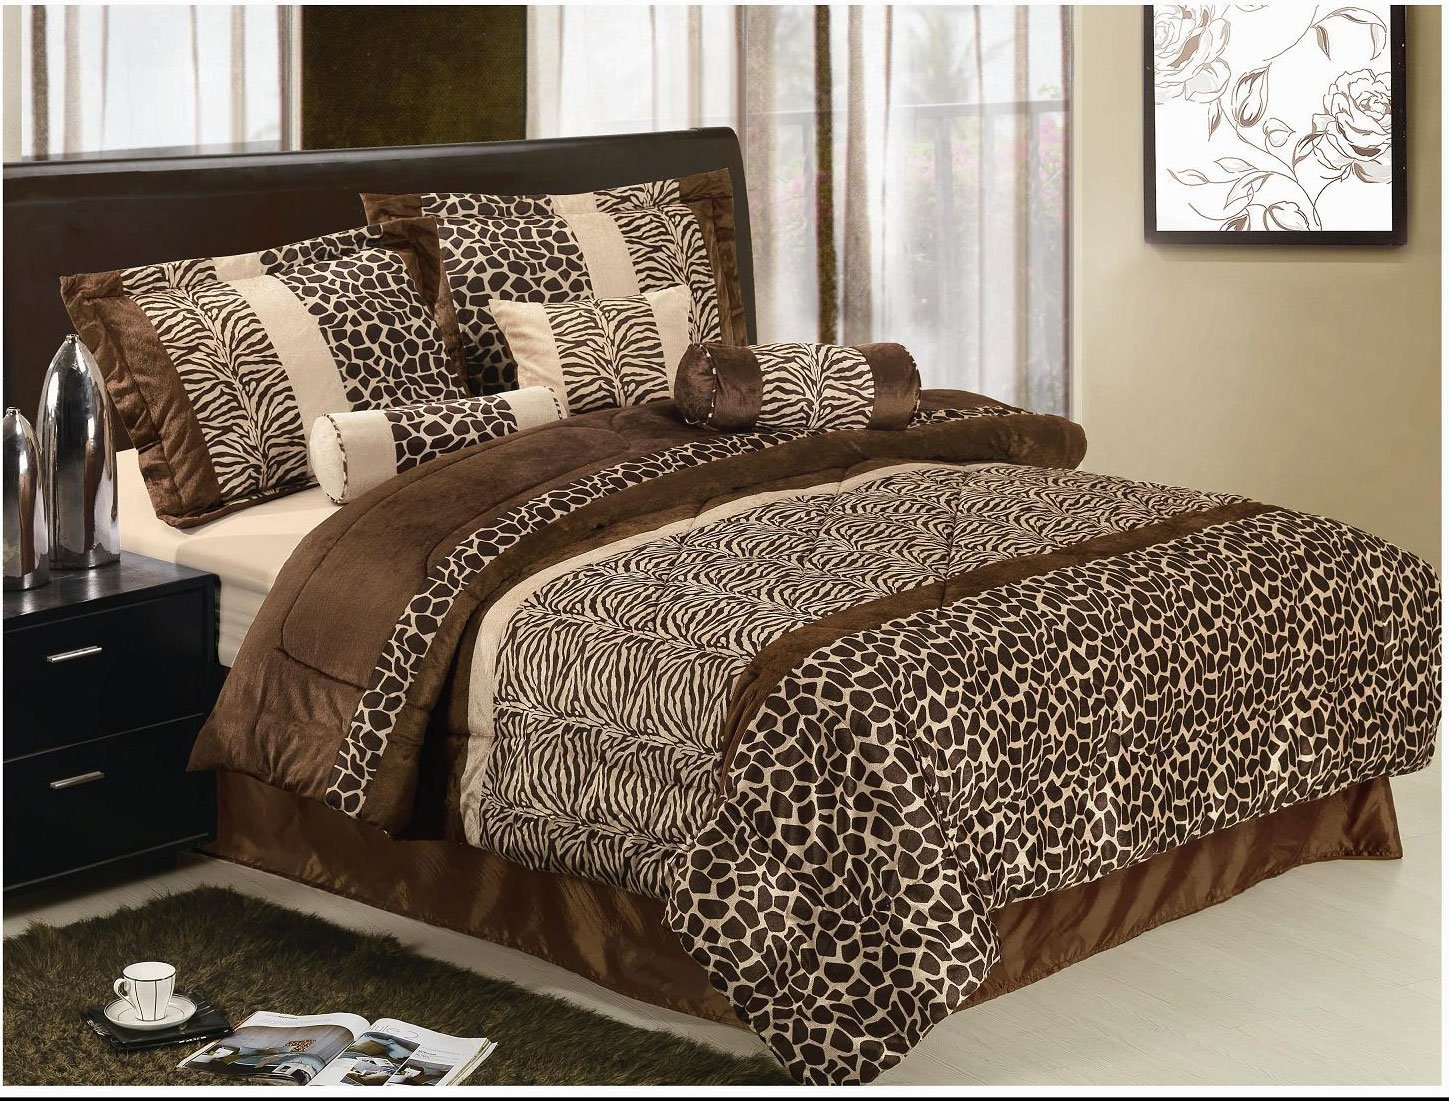 animal skin print bedding idea for safari bedroom decorating